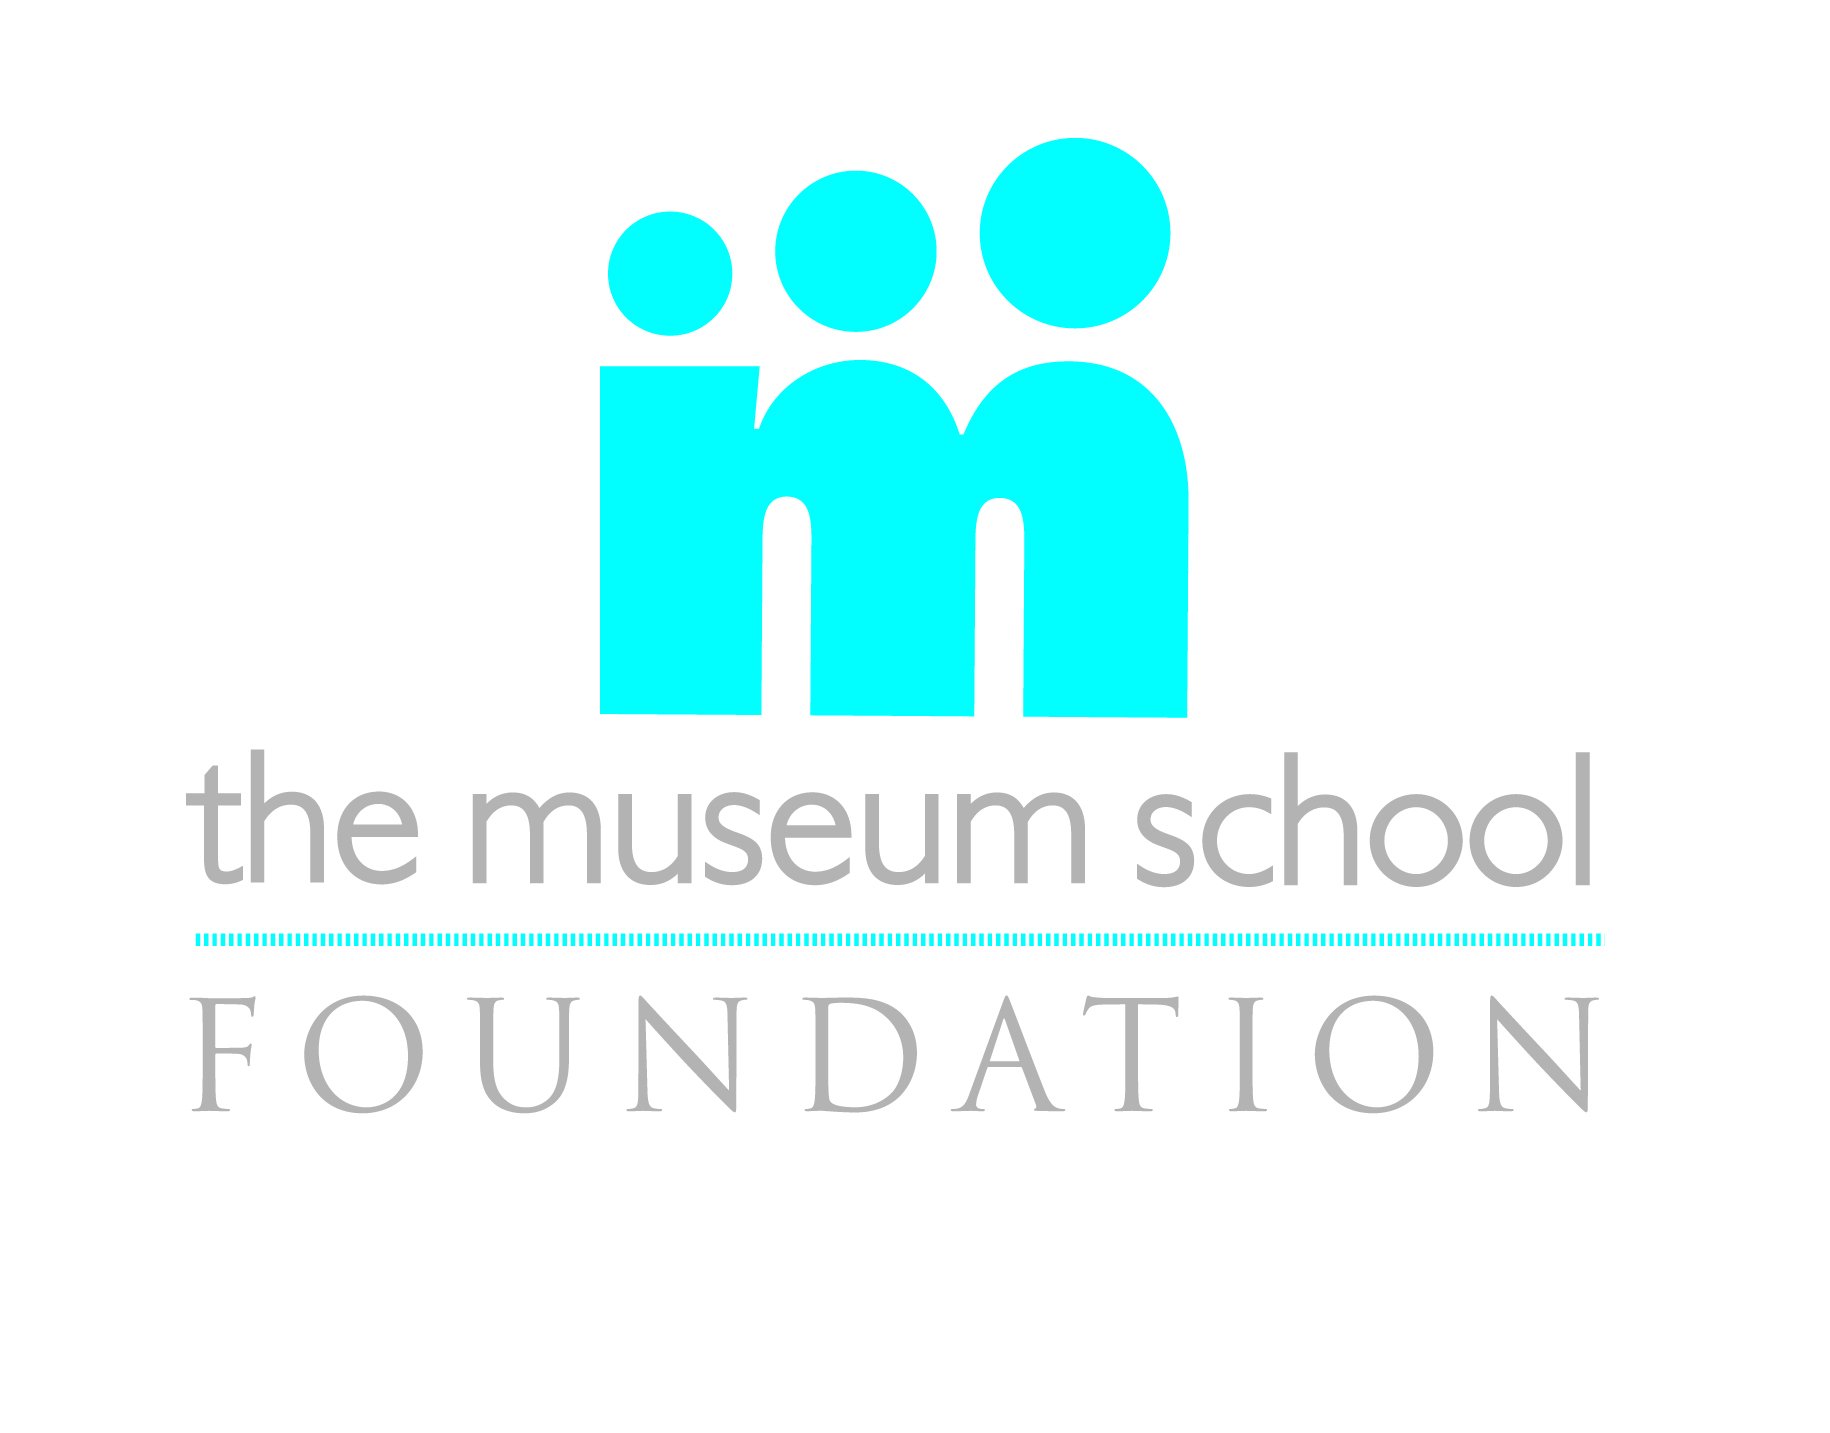 The Museum School Foundation